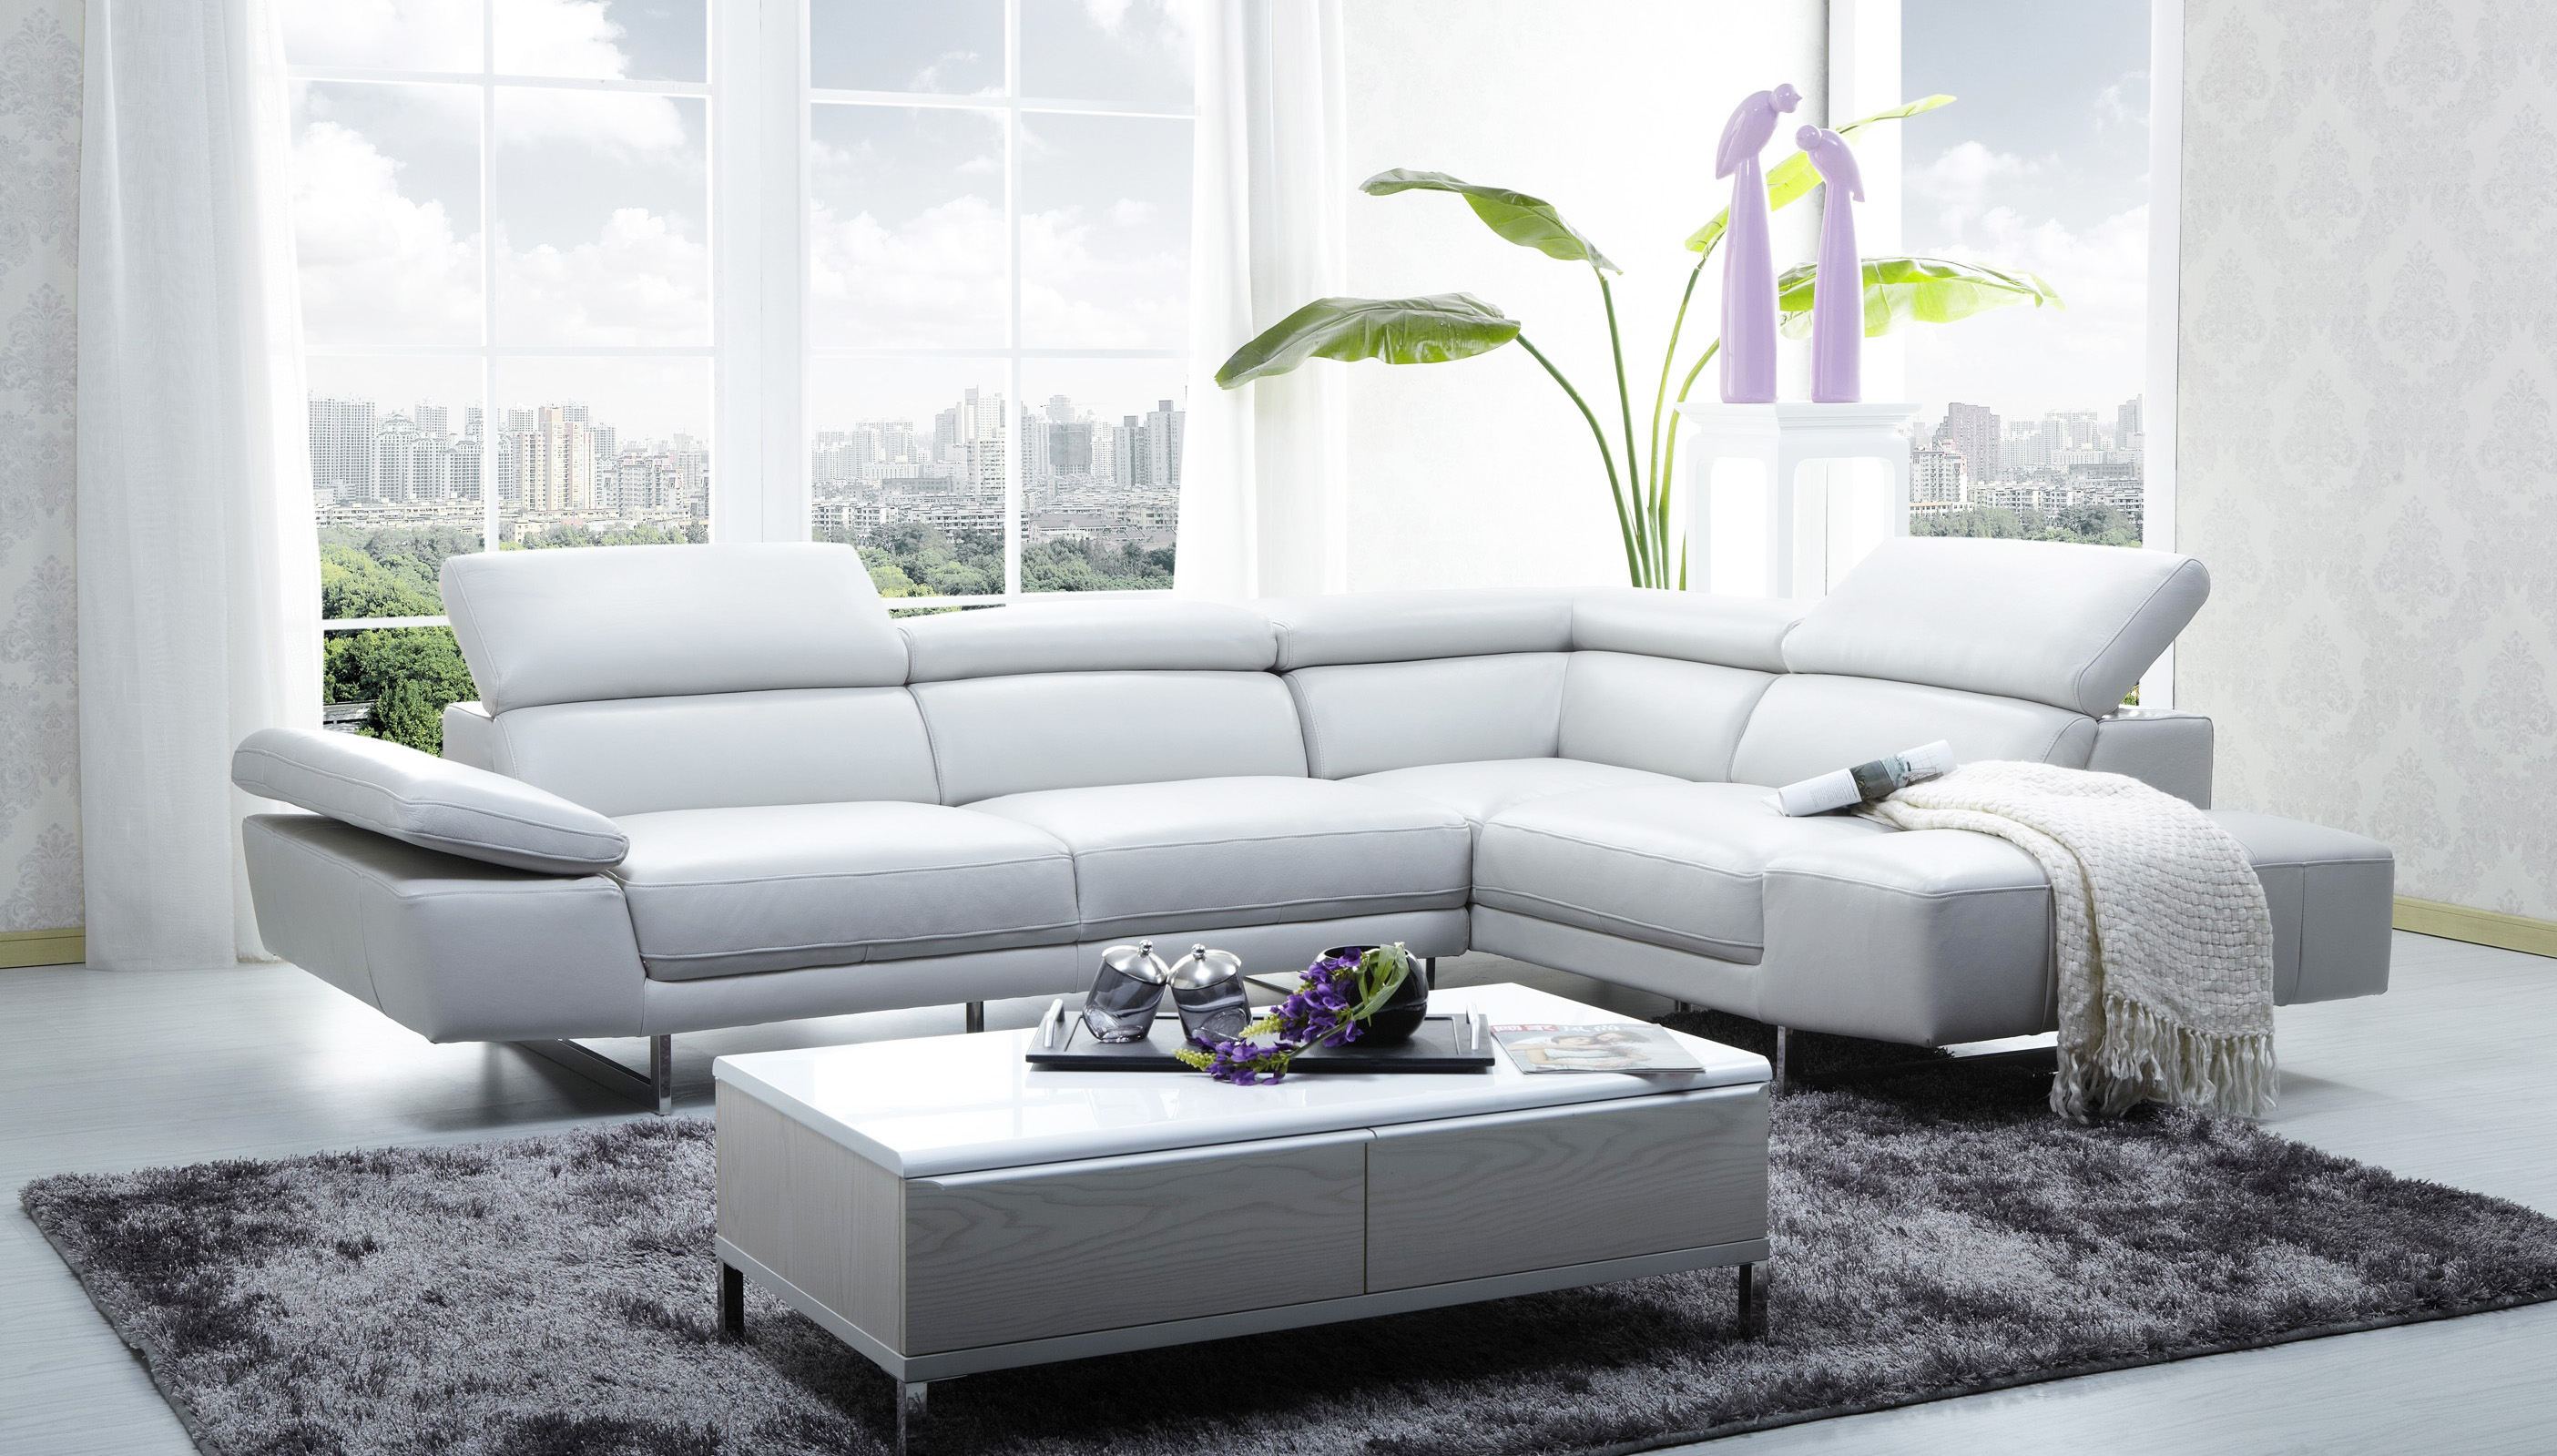 furniture-for-modern-house-for-modern-interior-living-room-furniture-sets-with-modern-white-sofa-also-rectangle-white-coffee-table-and-grey-rug-area-for-cozy-interior-living-room